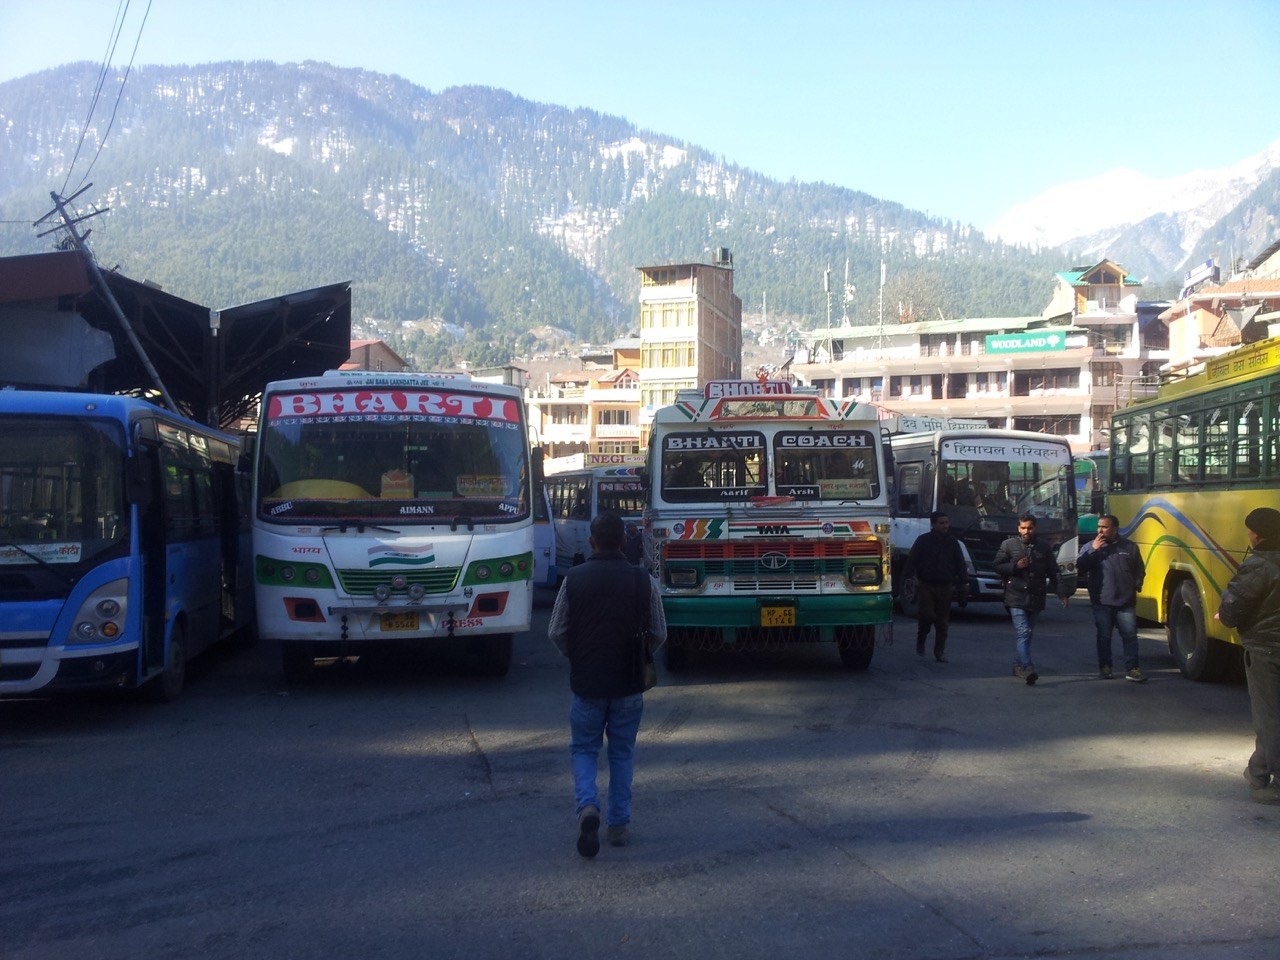 Manali bus stand with the great Himalayas in the background.